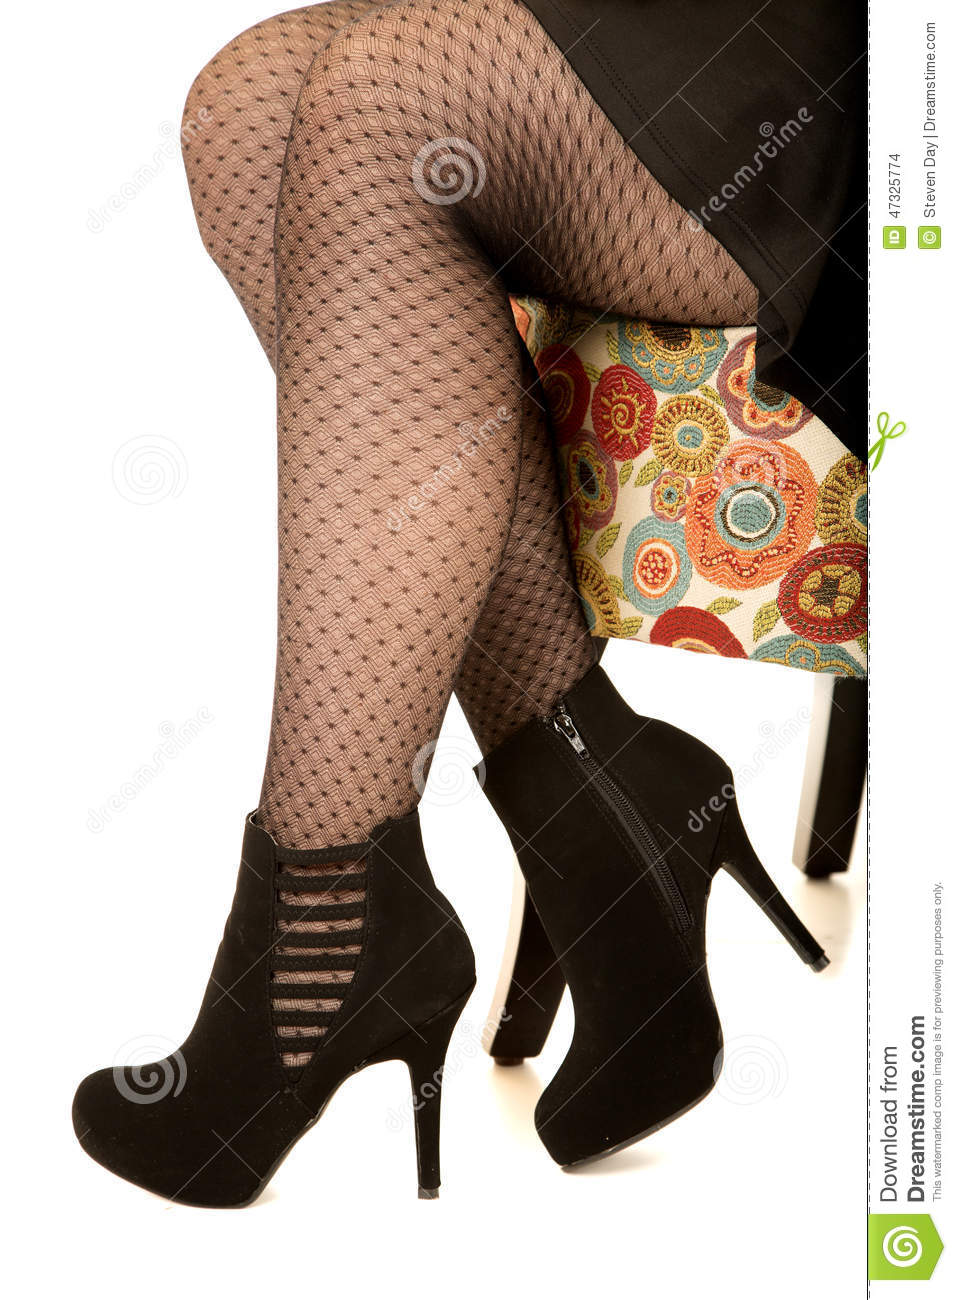 514e193460b4 Womans legs in fishnet style stockings sitting on floral pattern chair wearing  black heels